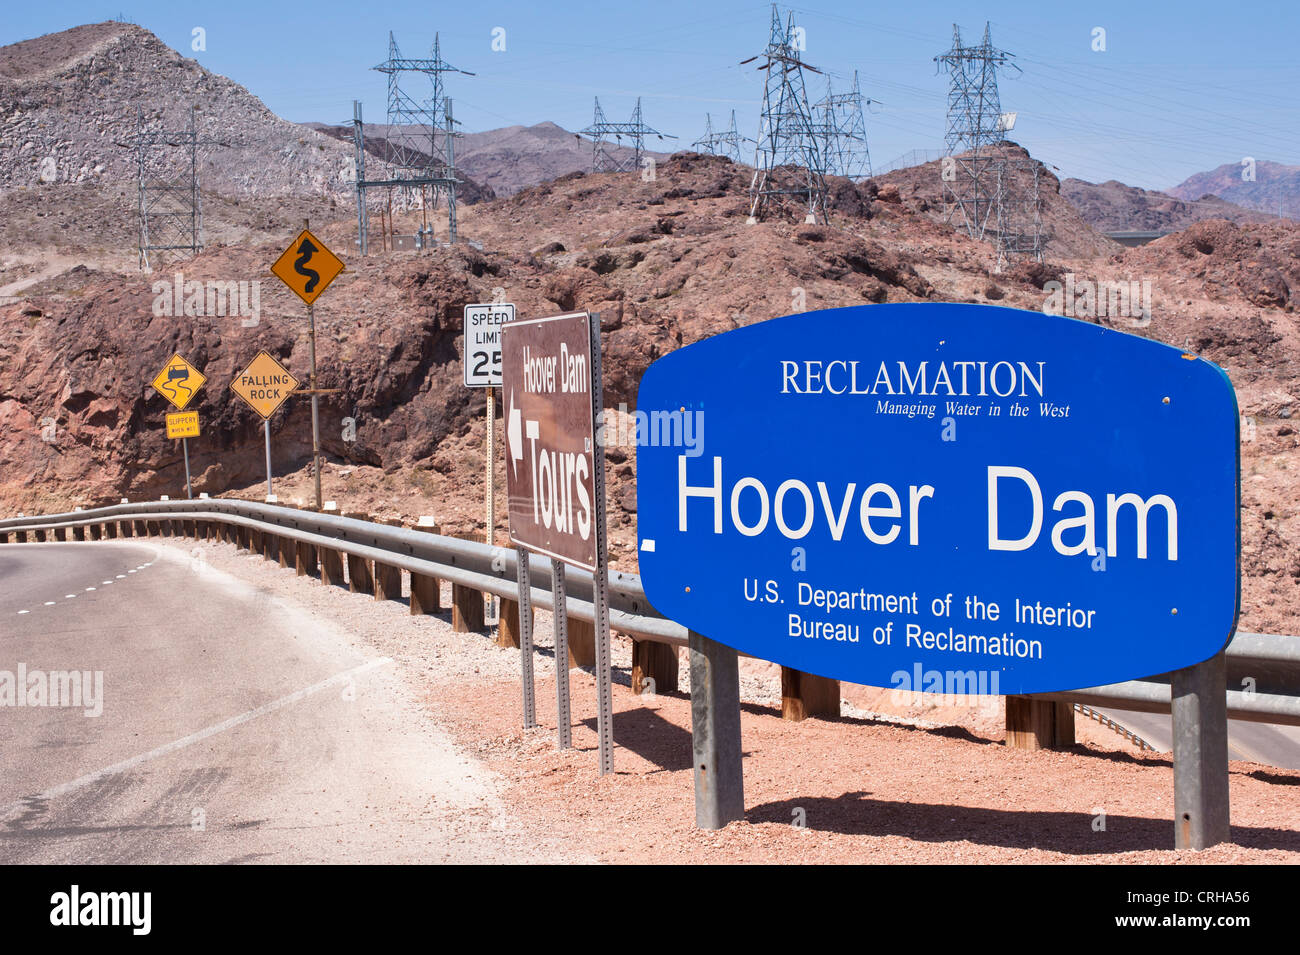 Signs At The Hoover Dam In Arizona Nevada, Usa Stock Photo. Hyundai Sonata Elantra Why Should I Join Aarp. Entertainment Companies In Miami. Hitachi Capital Business Finance. How To Become A Psychiatric Nurse Practitioner. Att Uverse Order Phone Number. Self Storage Walnut Creek Experian Precise Id. Bankruptcy Lawyer Columbus Ohio. Stanford Business School Faculty